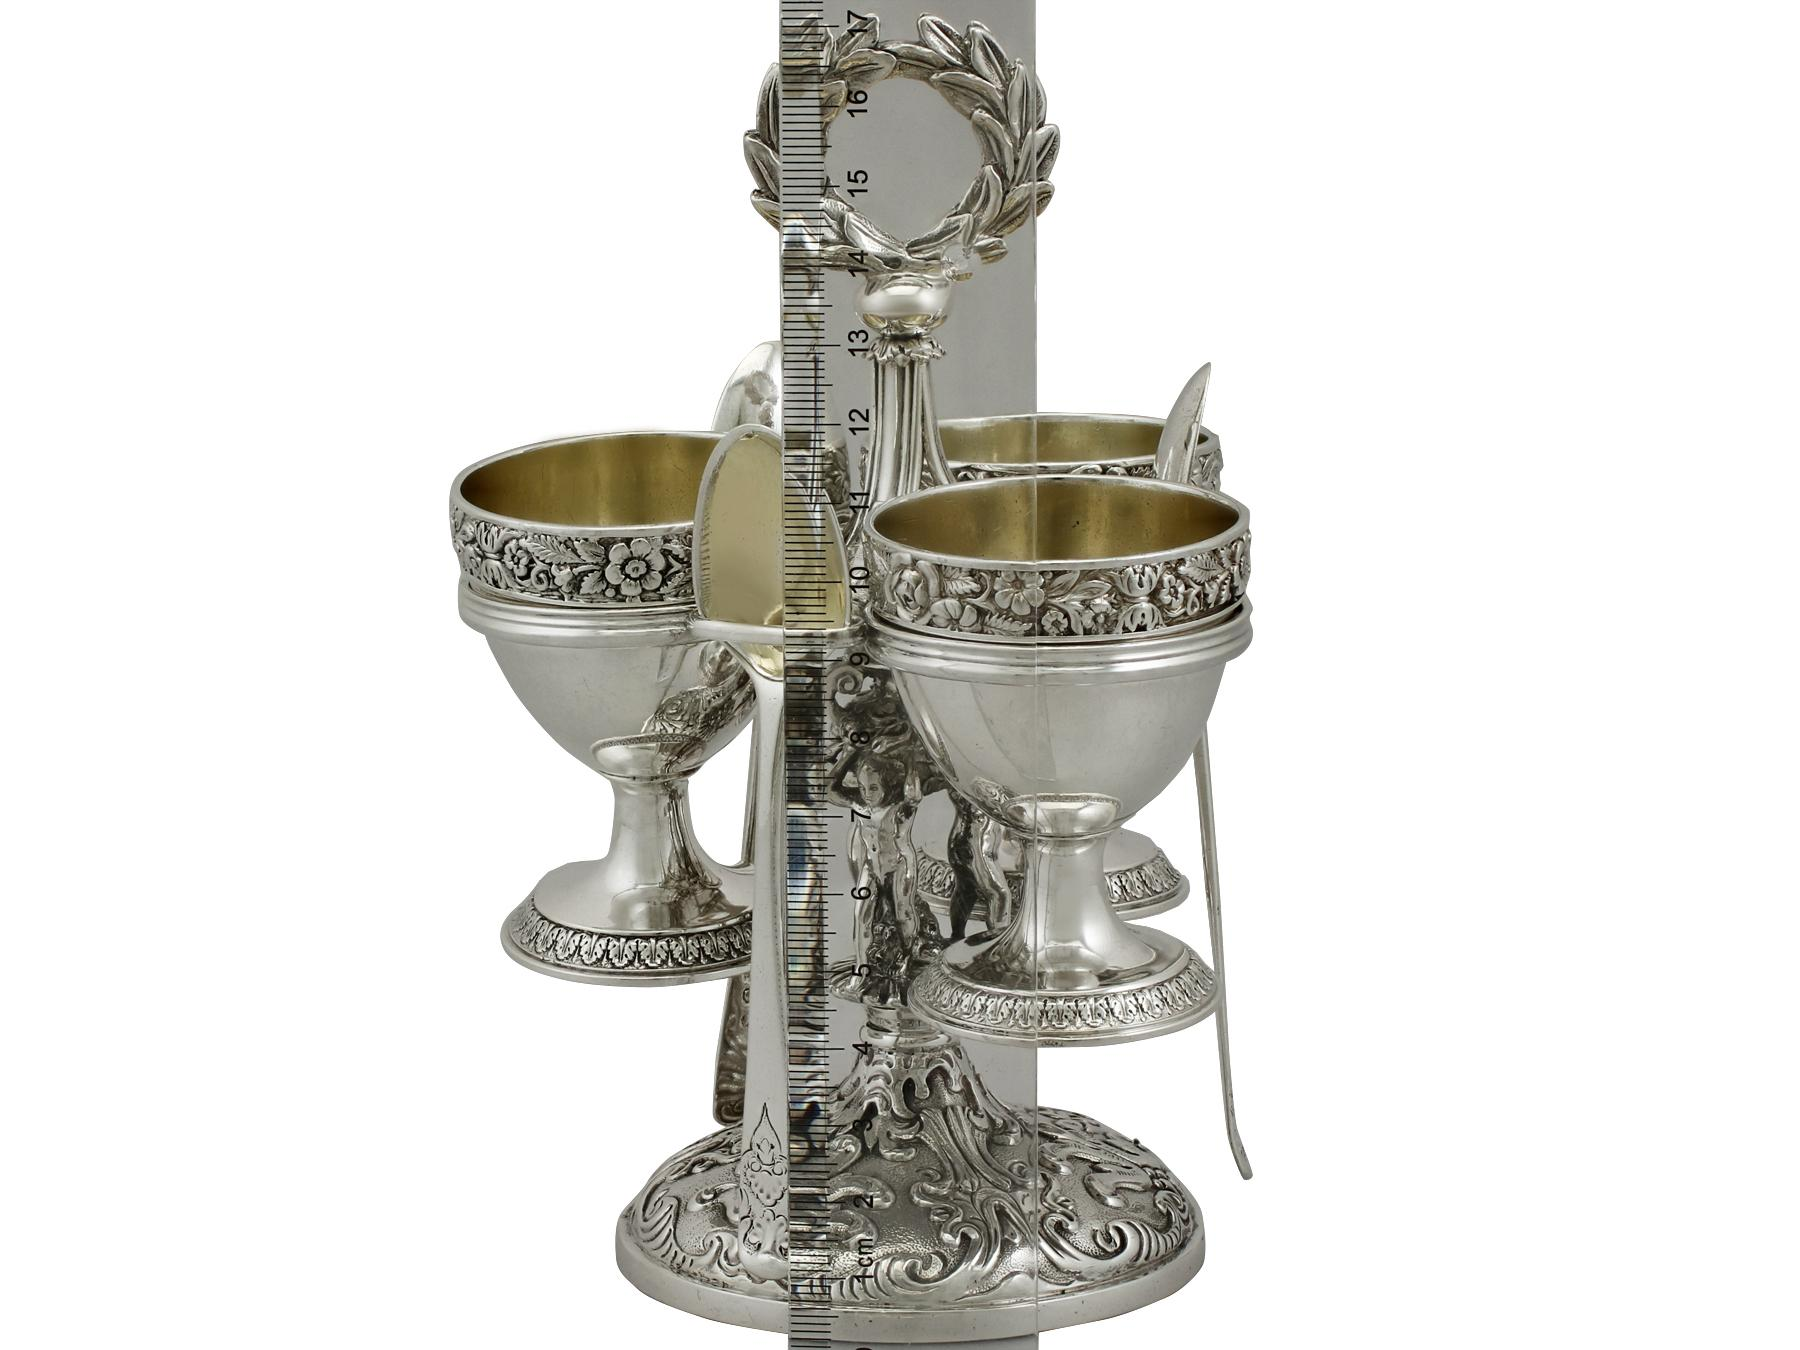 f8971ca06ecb Antique Sterling Silver Egg Cruet Set for Three Persons For Sale at 1stdibs